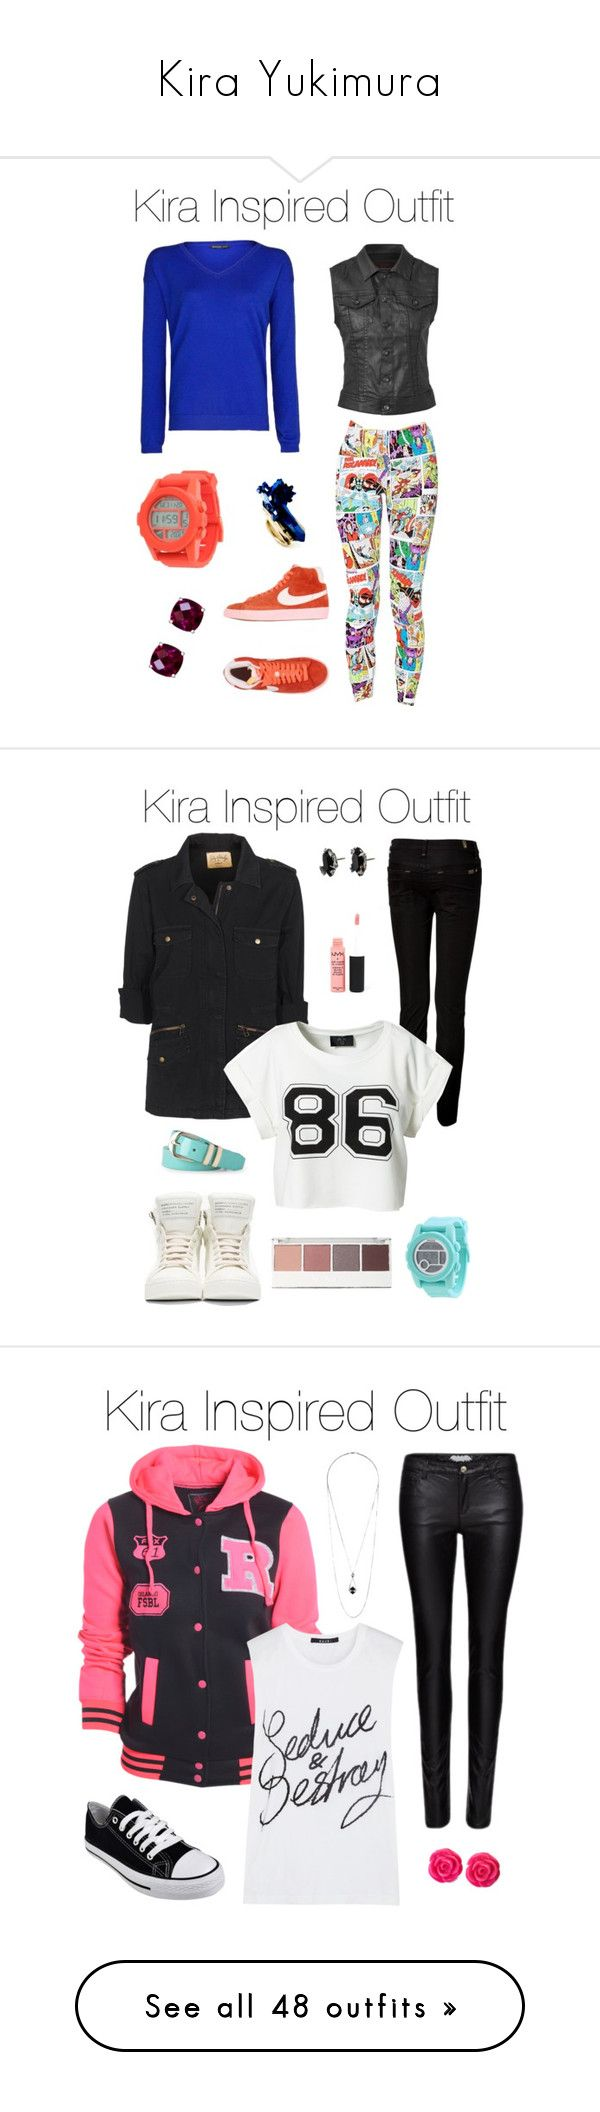 """Kira Yukimura"" by samtiritilli666lol ❤ liked on Polyvore featuring MANGO, Forever 21, AG Adriano Goldschmied, Nixon, NIKE, Reeds Jewelers, NYX, 7 For All Mankind, Marc by Marc Jacobs and Velvet by Graham & Spencer"